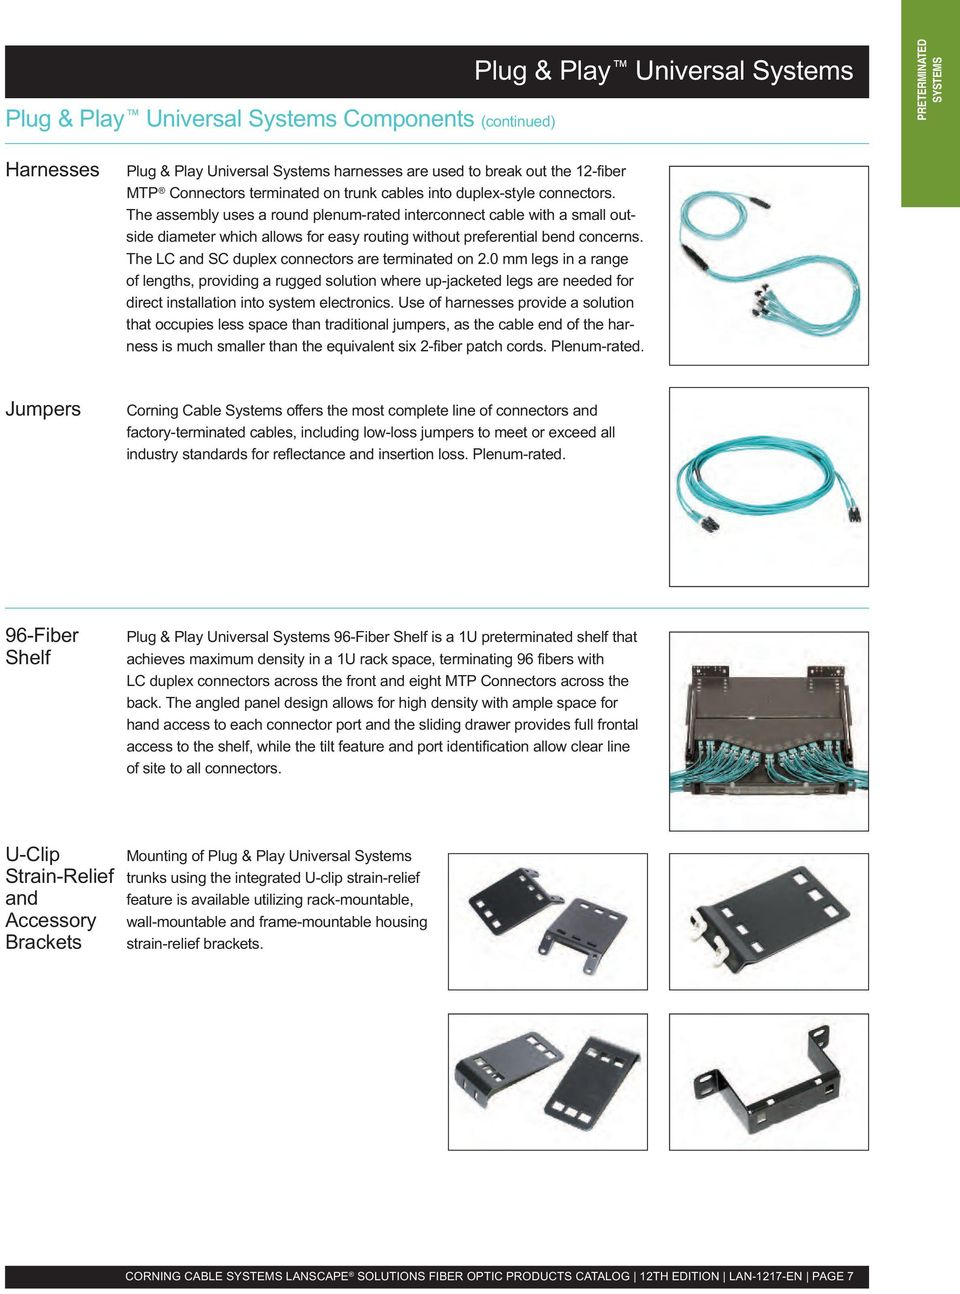 Lanscape Solutions Fiber Optic Products Catalog Pdf Aerial Lead Conn Central Wiring Harness Single Parts Housing See The Assembly Uses A Round Plenum Rated Interconnect Cable With Small Outside Diameter Which